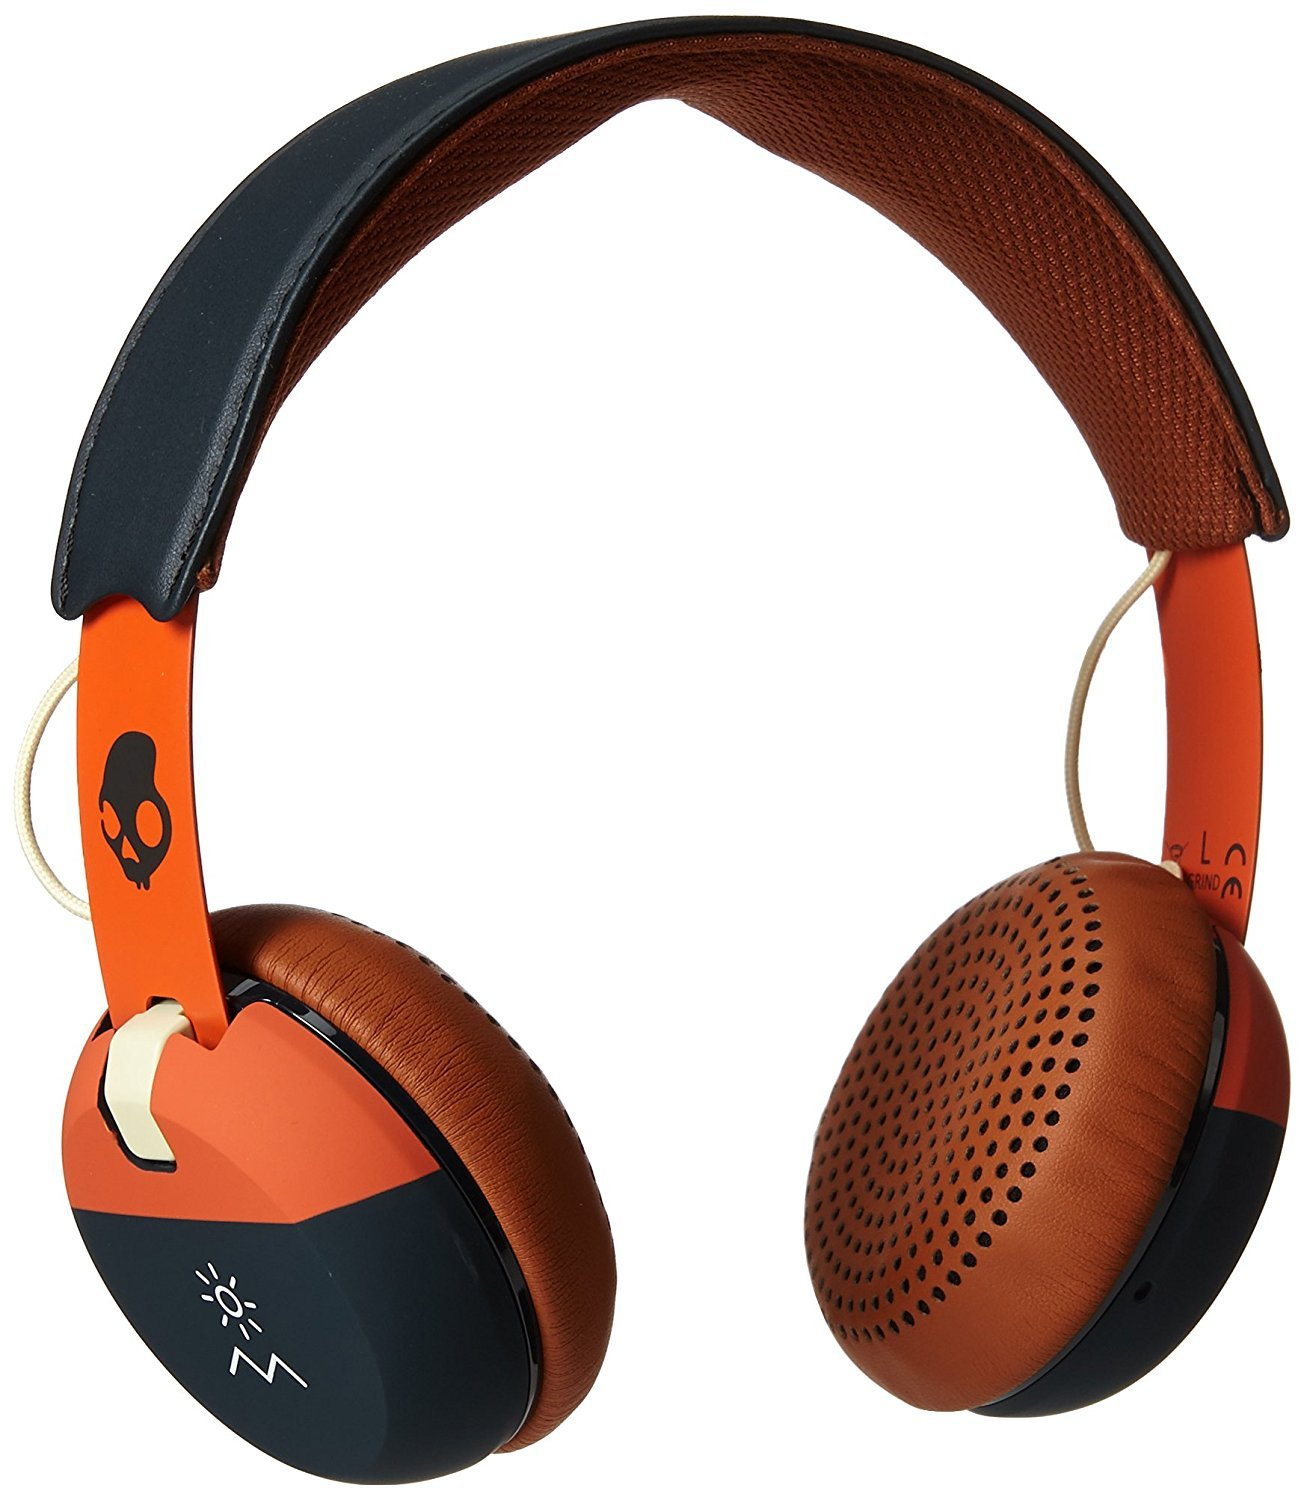 Skullcandy Grind On-Ear Headphones with Built-In Microphone, Supreme Sound with Powerful Bass, Low Profile Design, Plush On-Ear Cushions and Durable Metal Headband